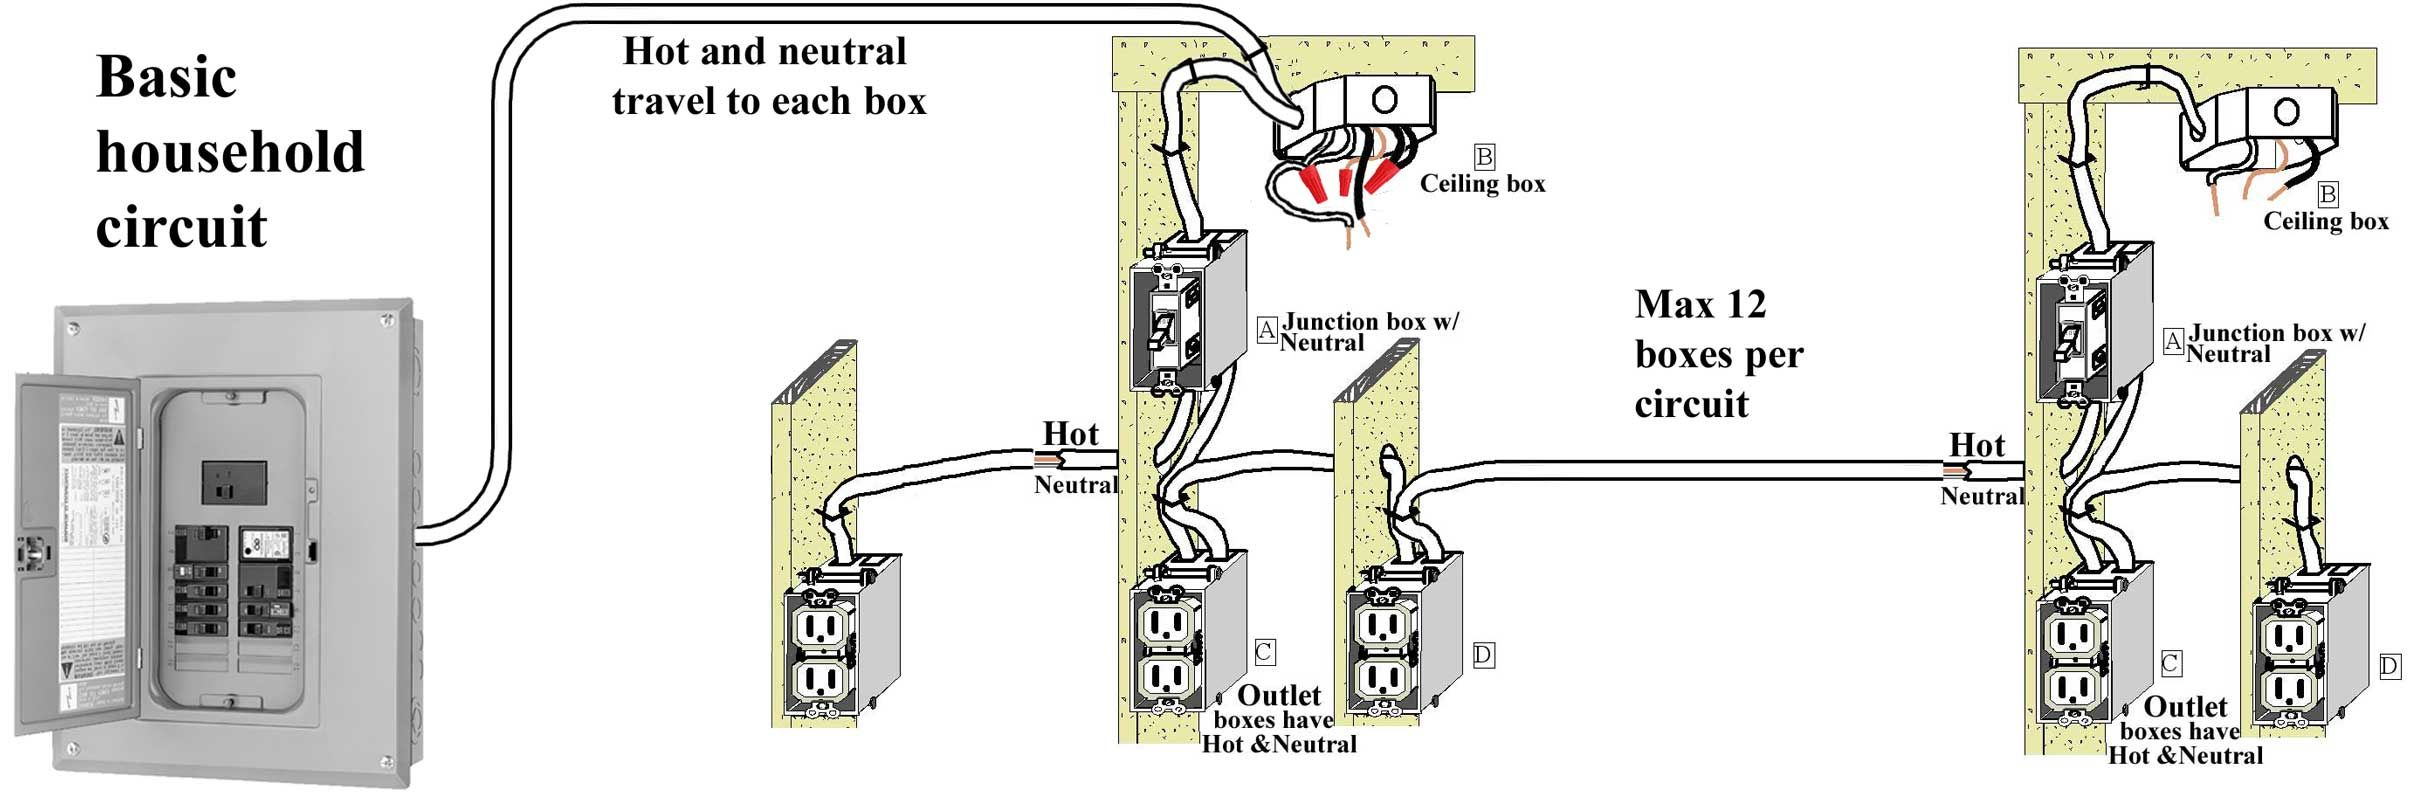 Basic House Wiring Diagrams - Today Wiring Diagram - Home Wiring Diagram